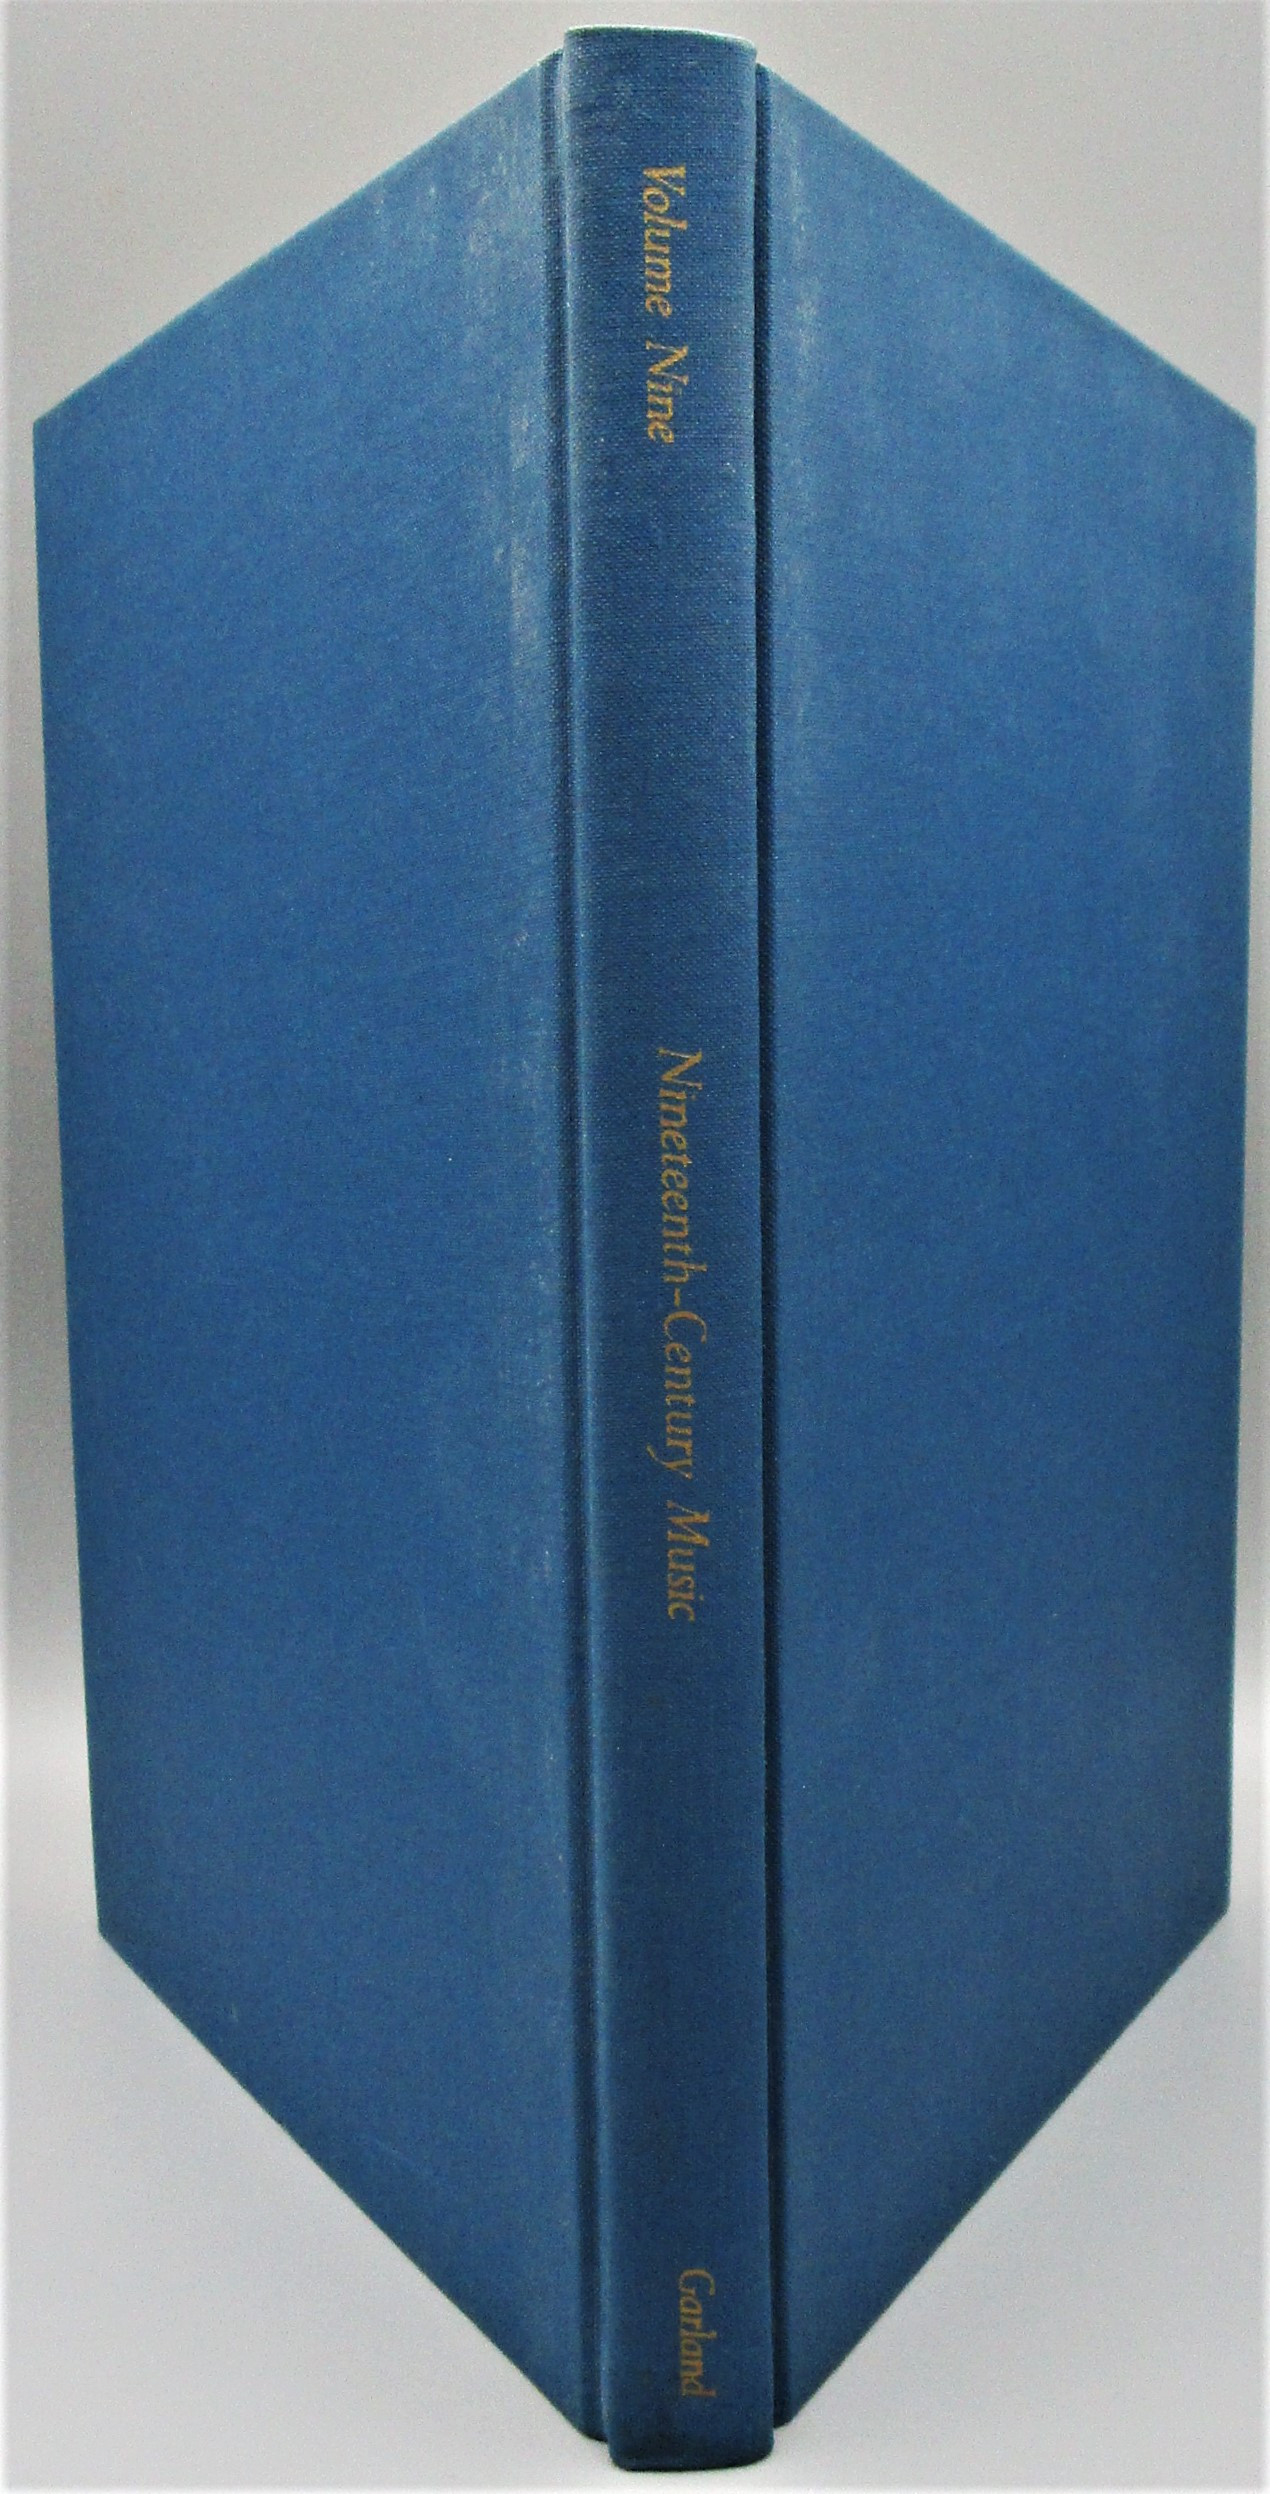 NINETEENTH CENTURY MUSIC - 1985 [Vol 9, 1st Ed]